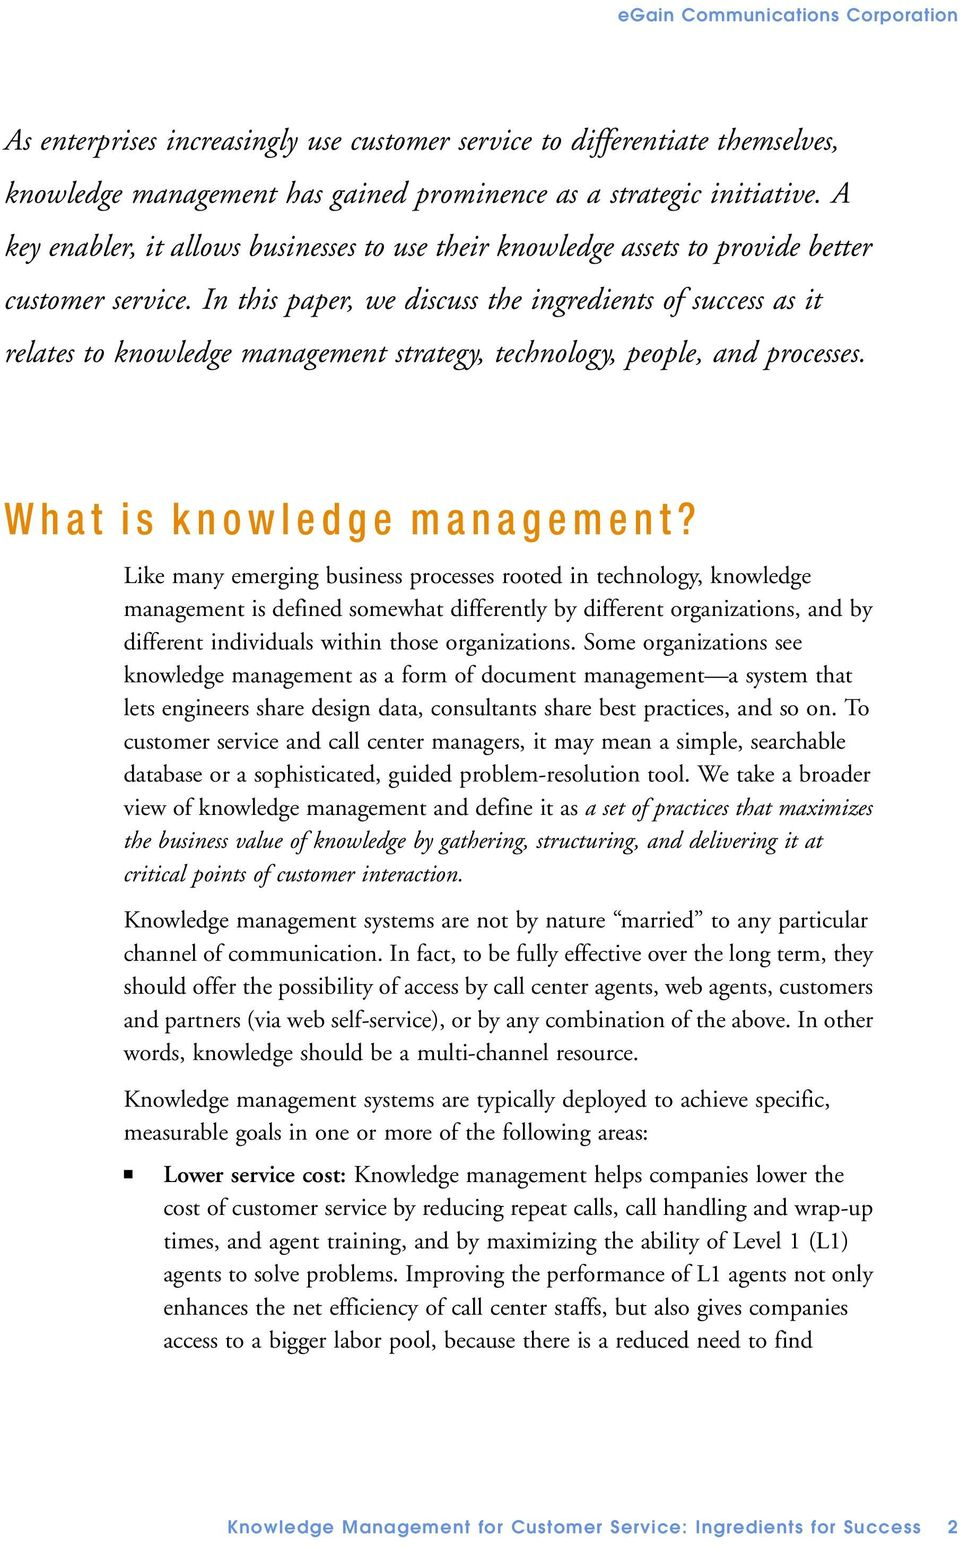 In this paper, we discuss the ingredients of success as it relates to knowledge management strategy, technology, people, and processes. What is knowledge management?